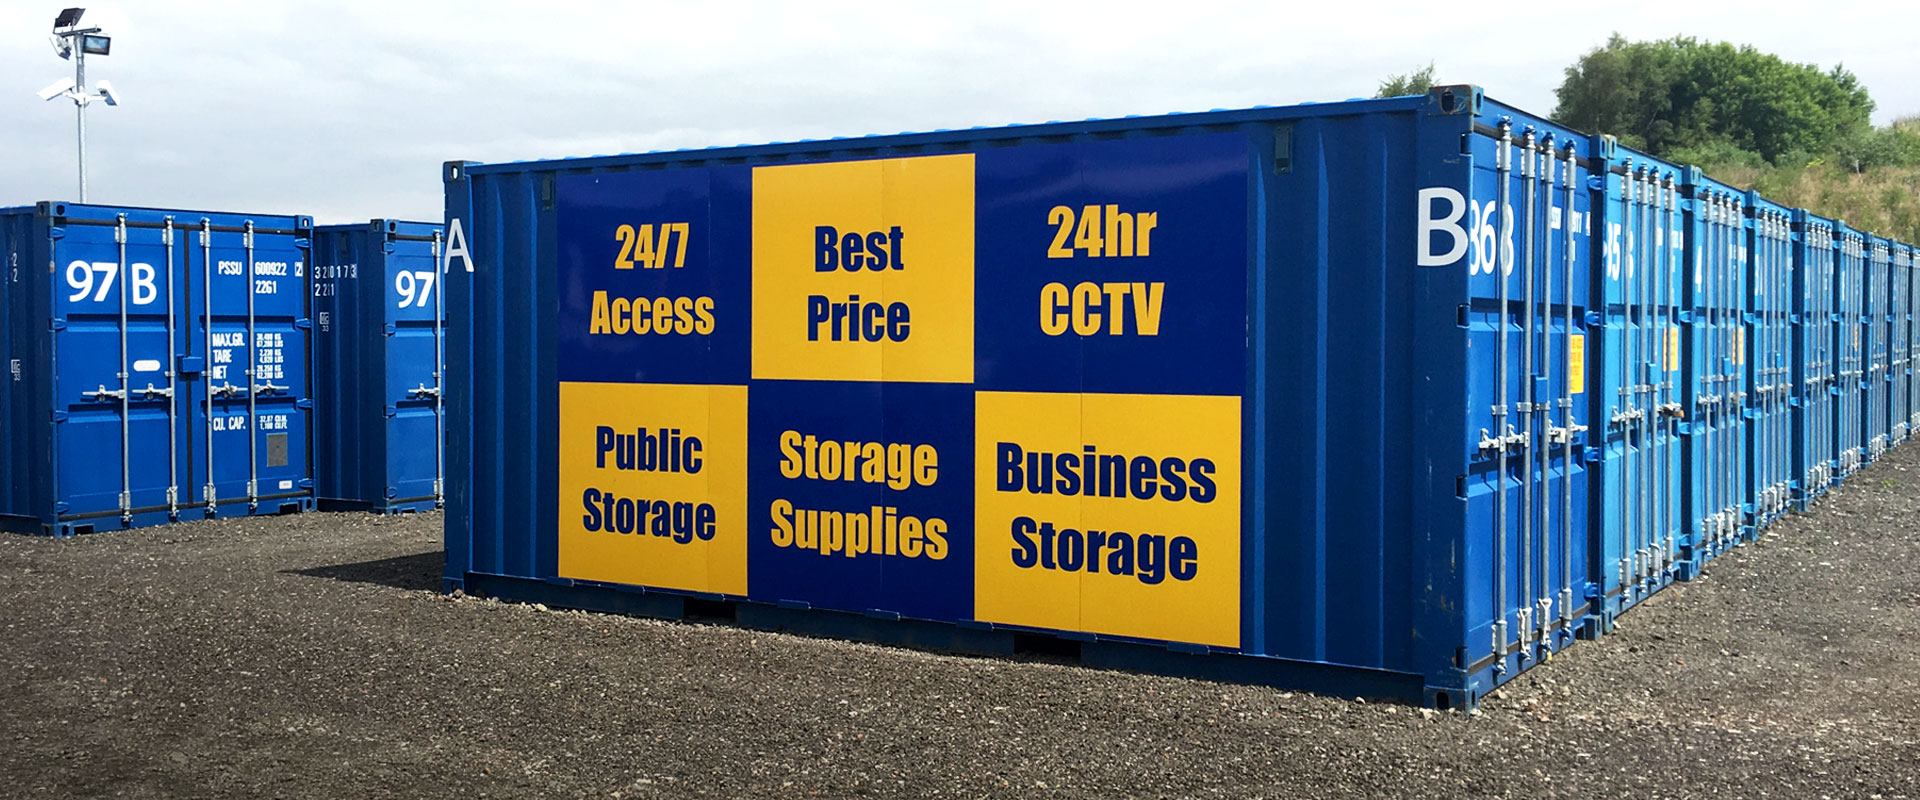 Robinsons Self Storage Container Sign